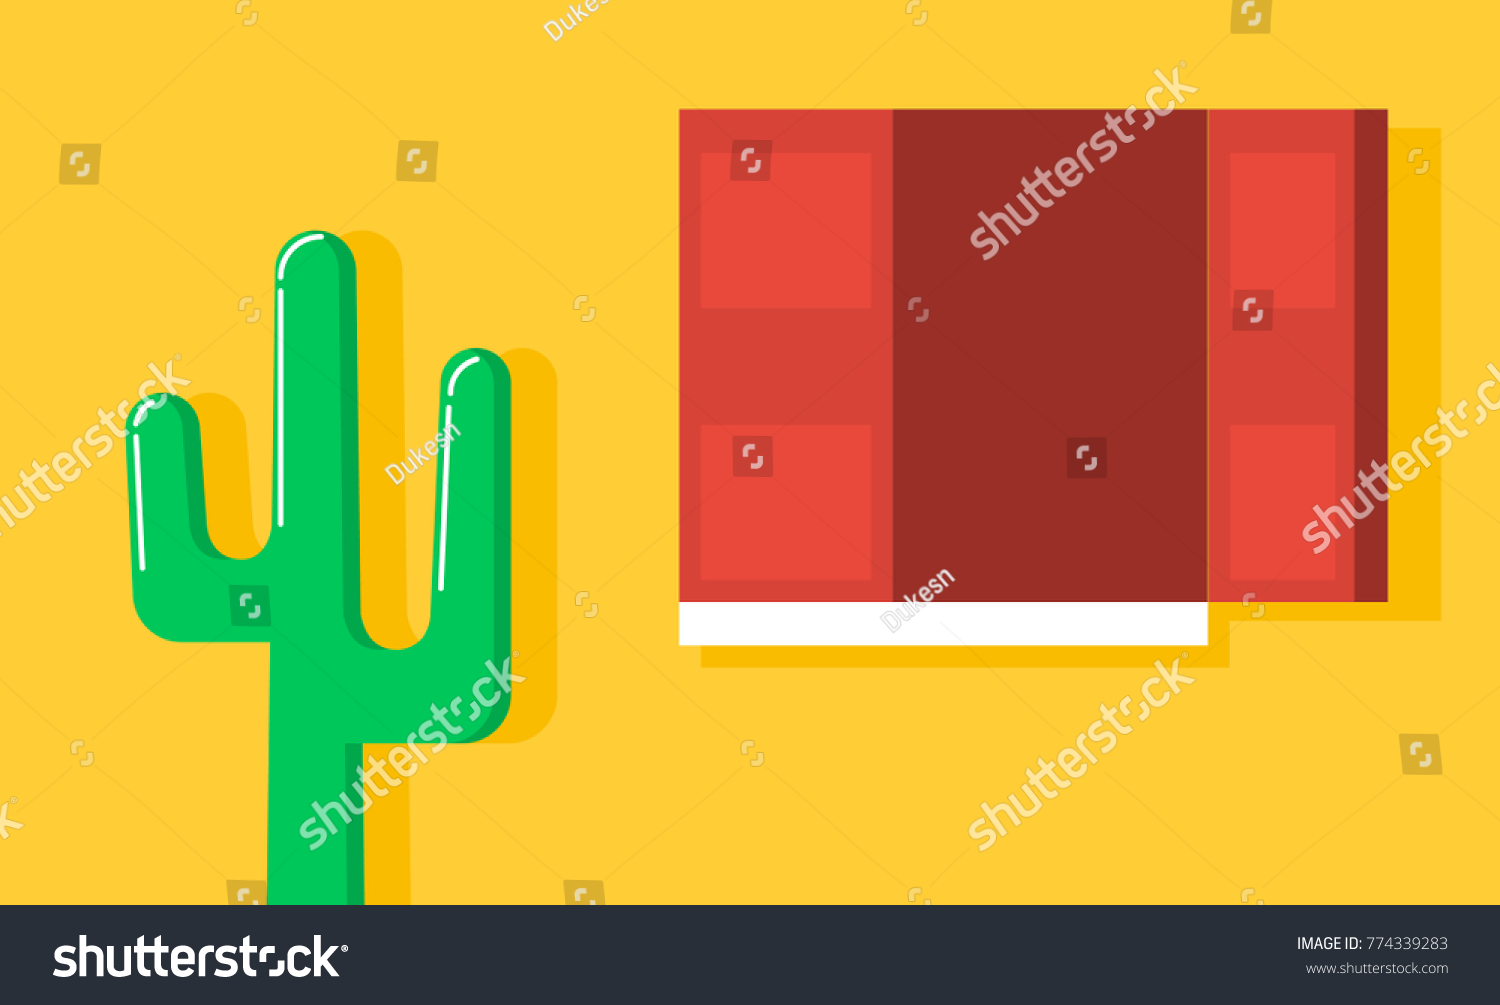 Cactus Yellow Wall Window Wooden Red Stock Vector 774339283 ...